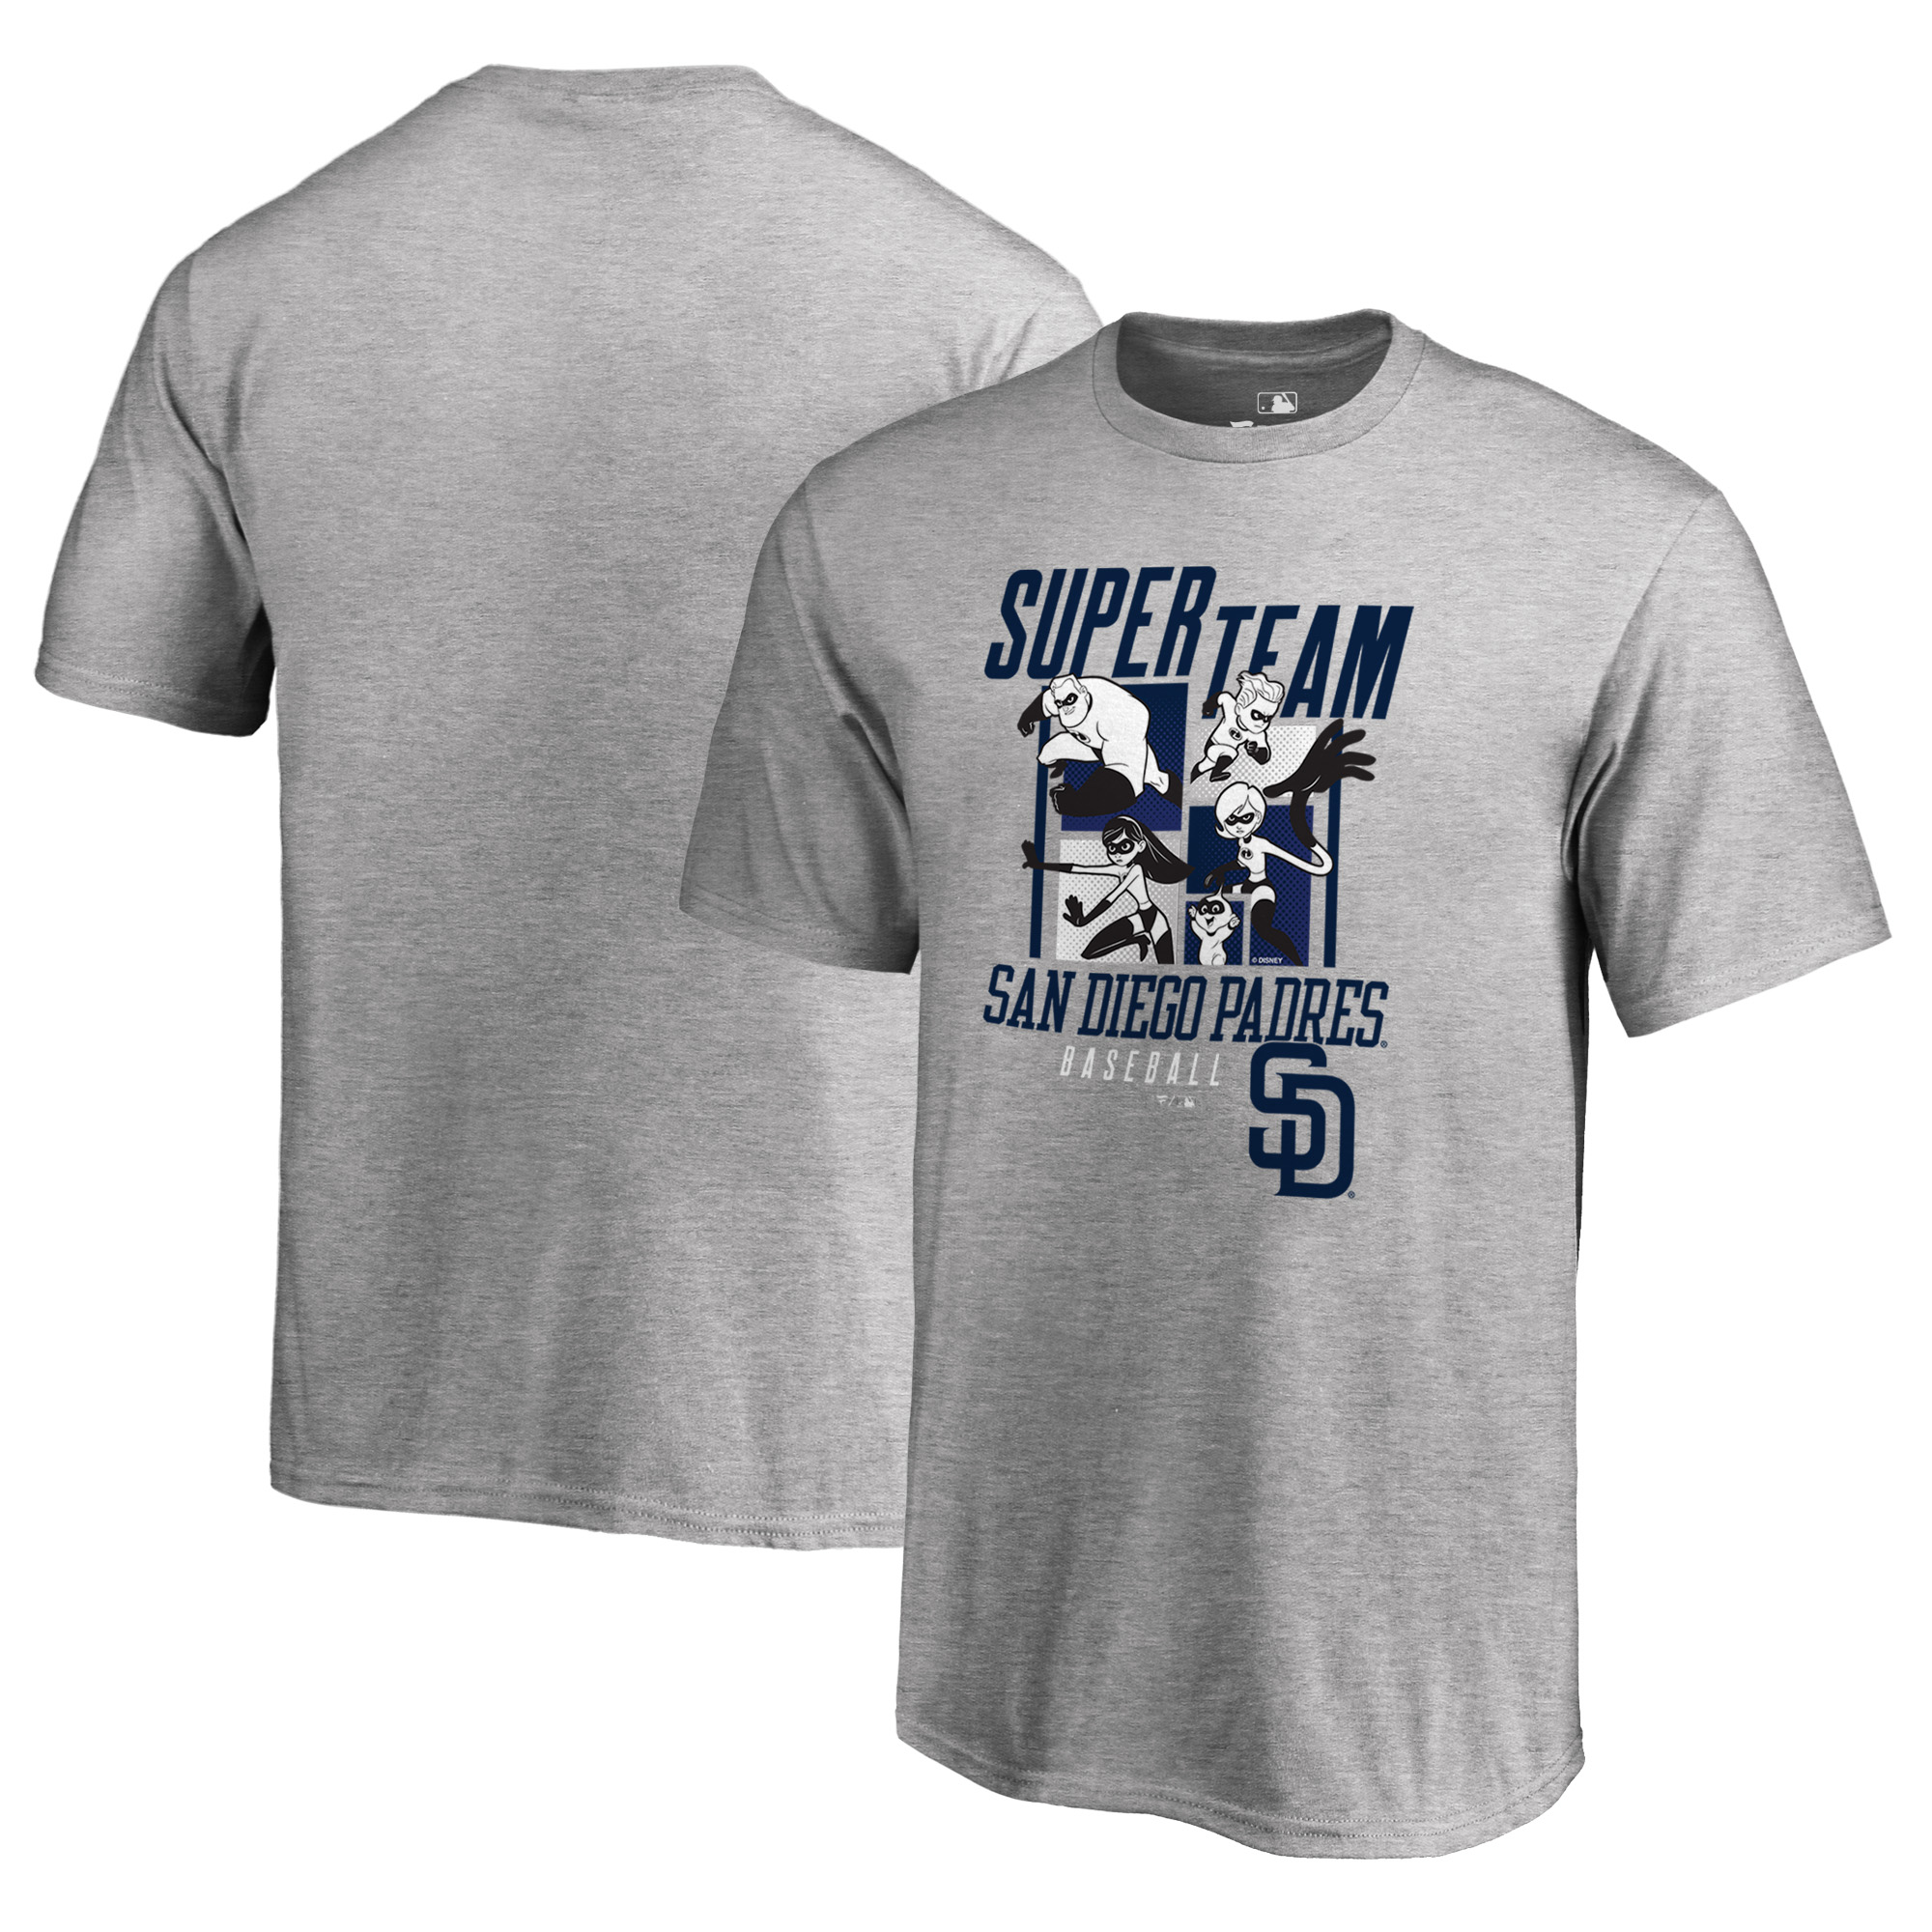 San Diego Padres Fanatics Branded Youth Disney Pixar Incredibles Super Team T-Shirt - Heathered Gray